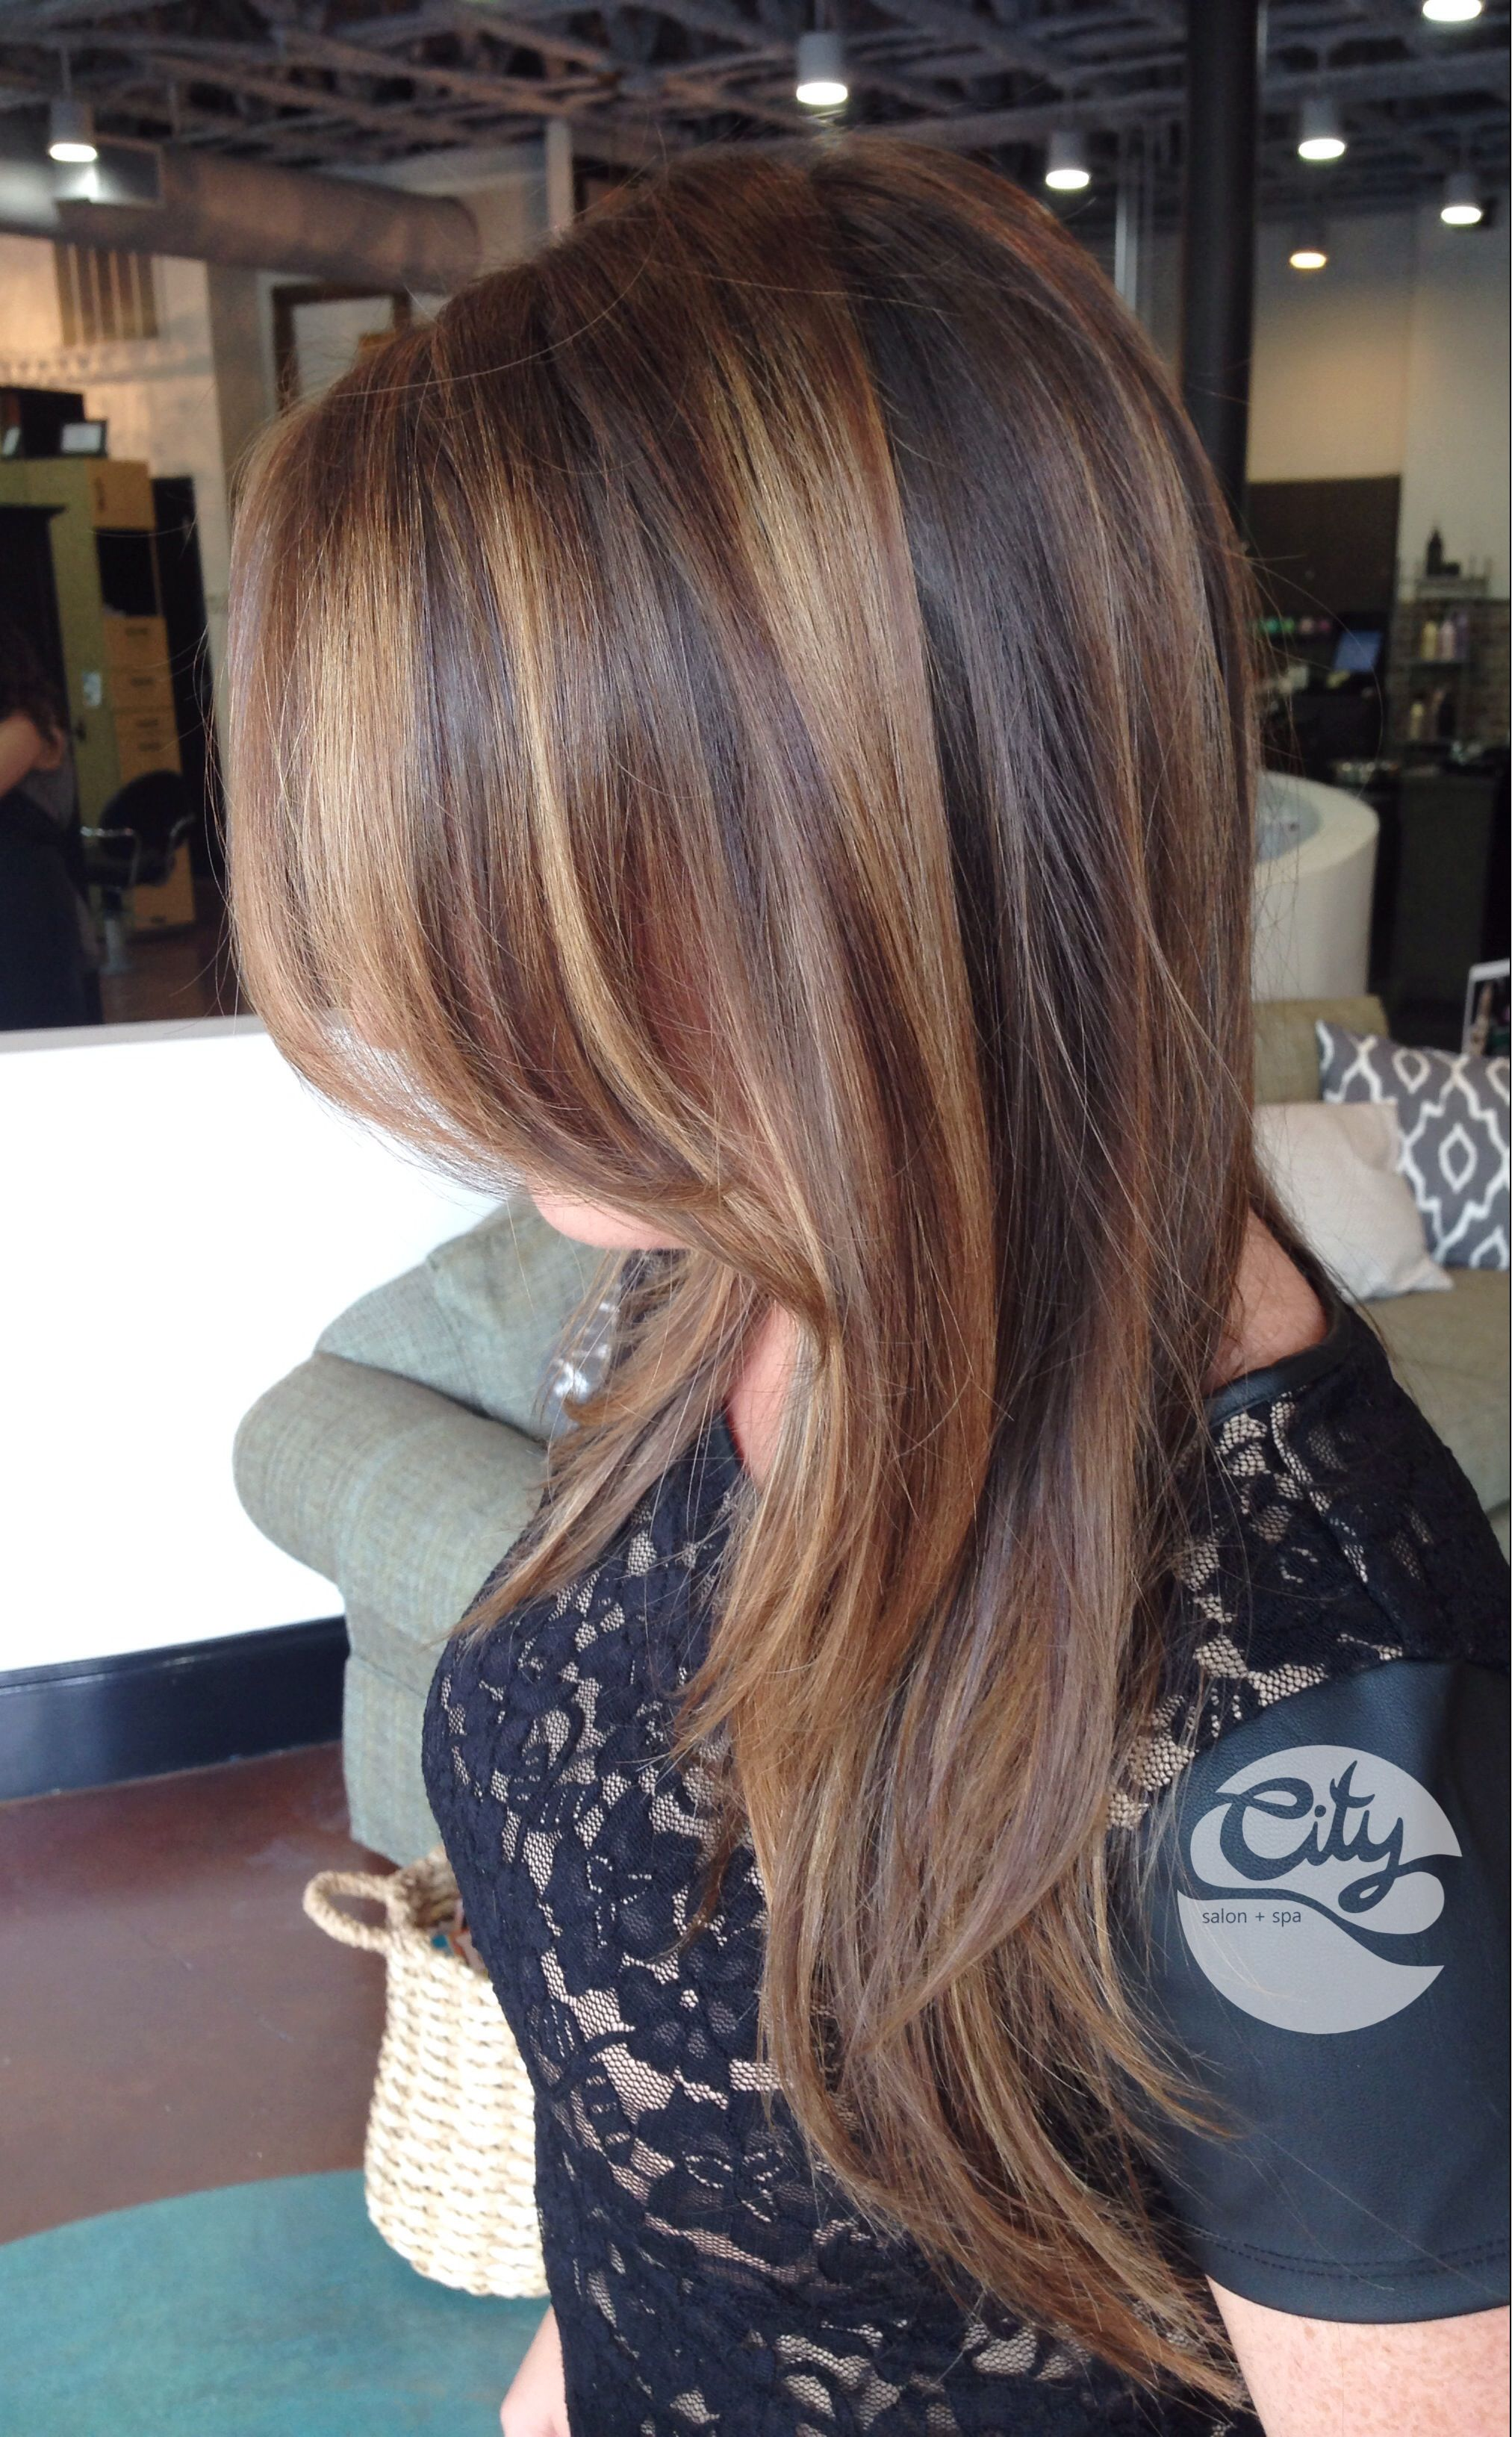 Balayage Brunette By Olive At City Salon And Spa Of Athens